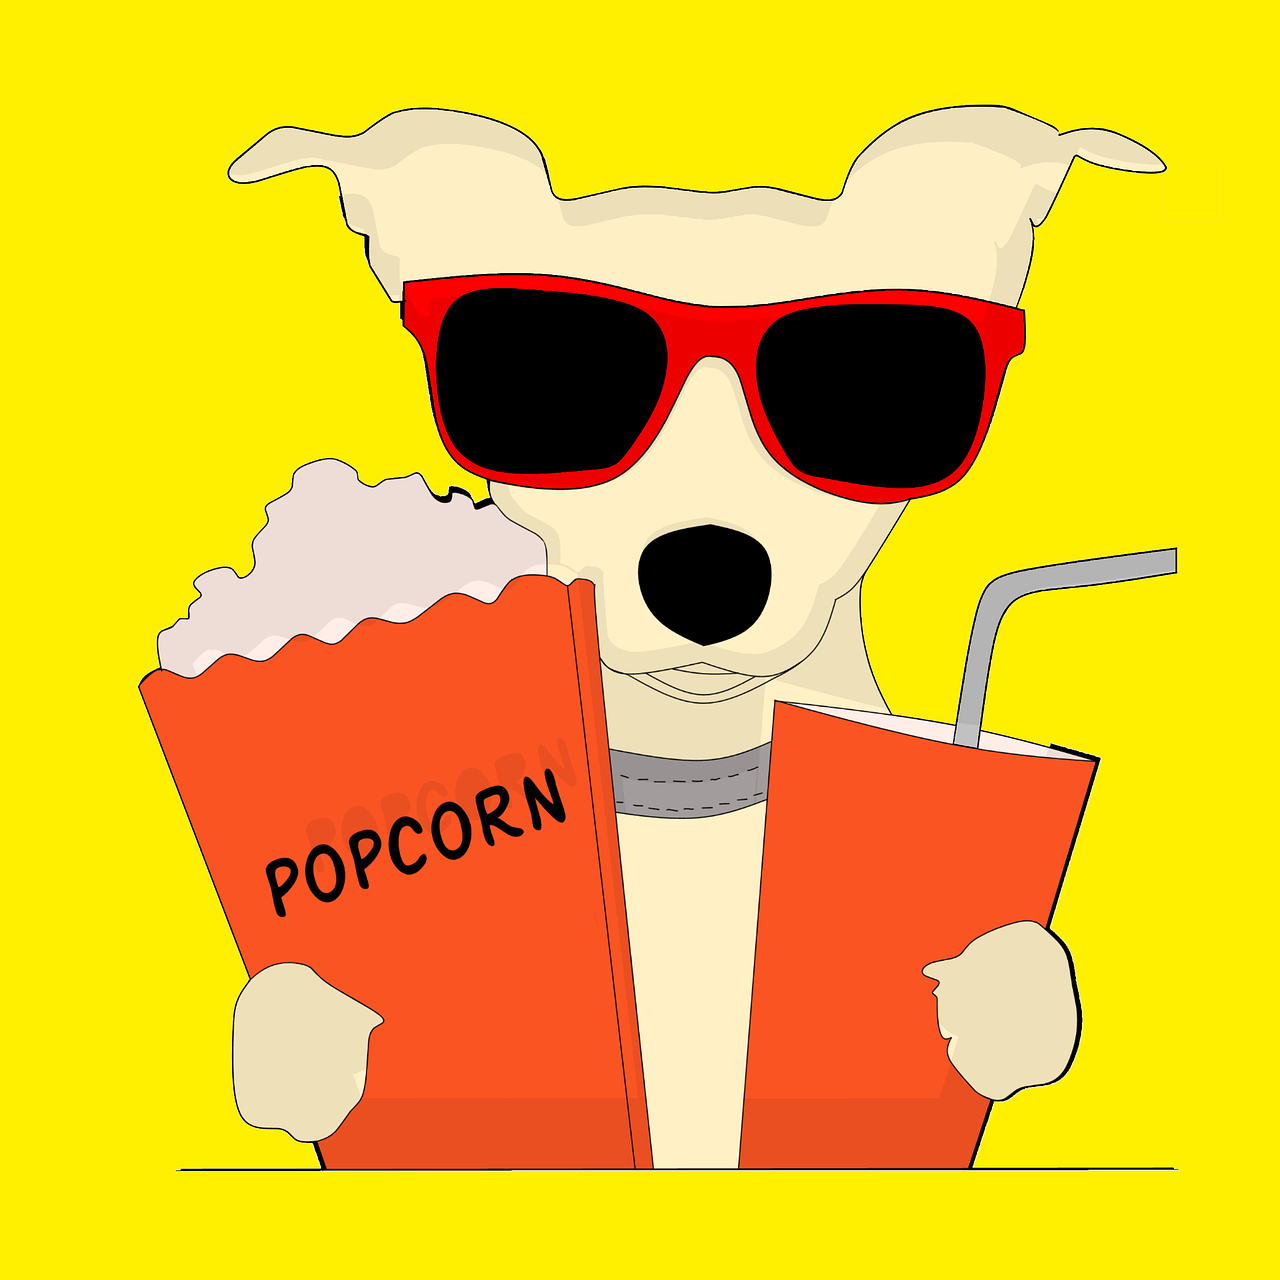 digital drawing of a small dog wearing sunglasses and holding a cup on his left paw and a popcorn on his right paw